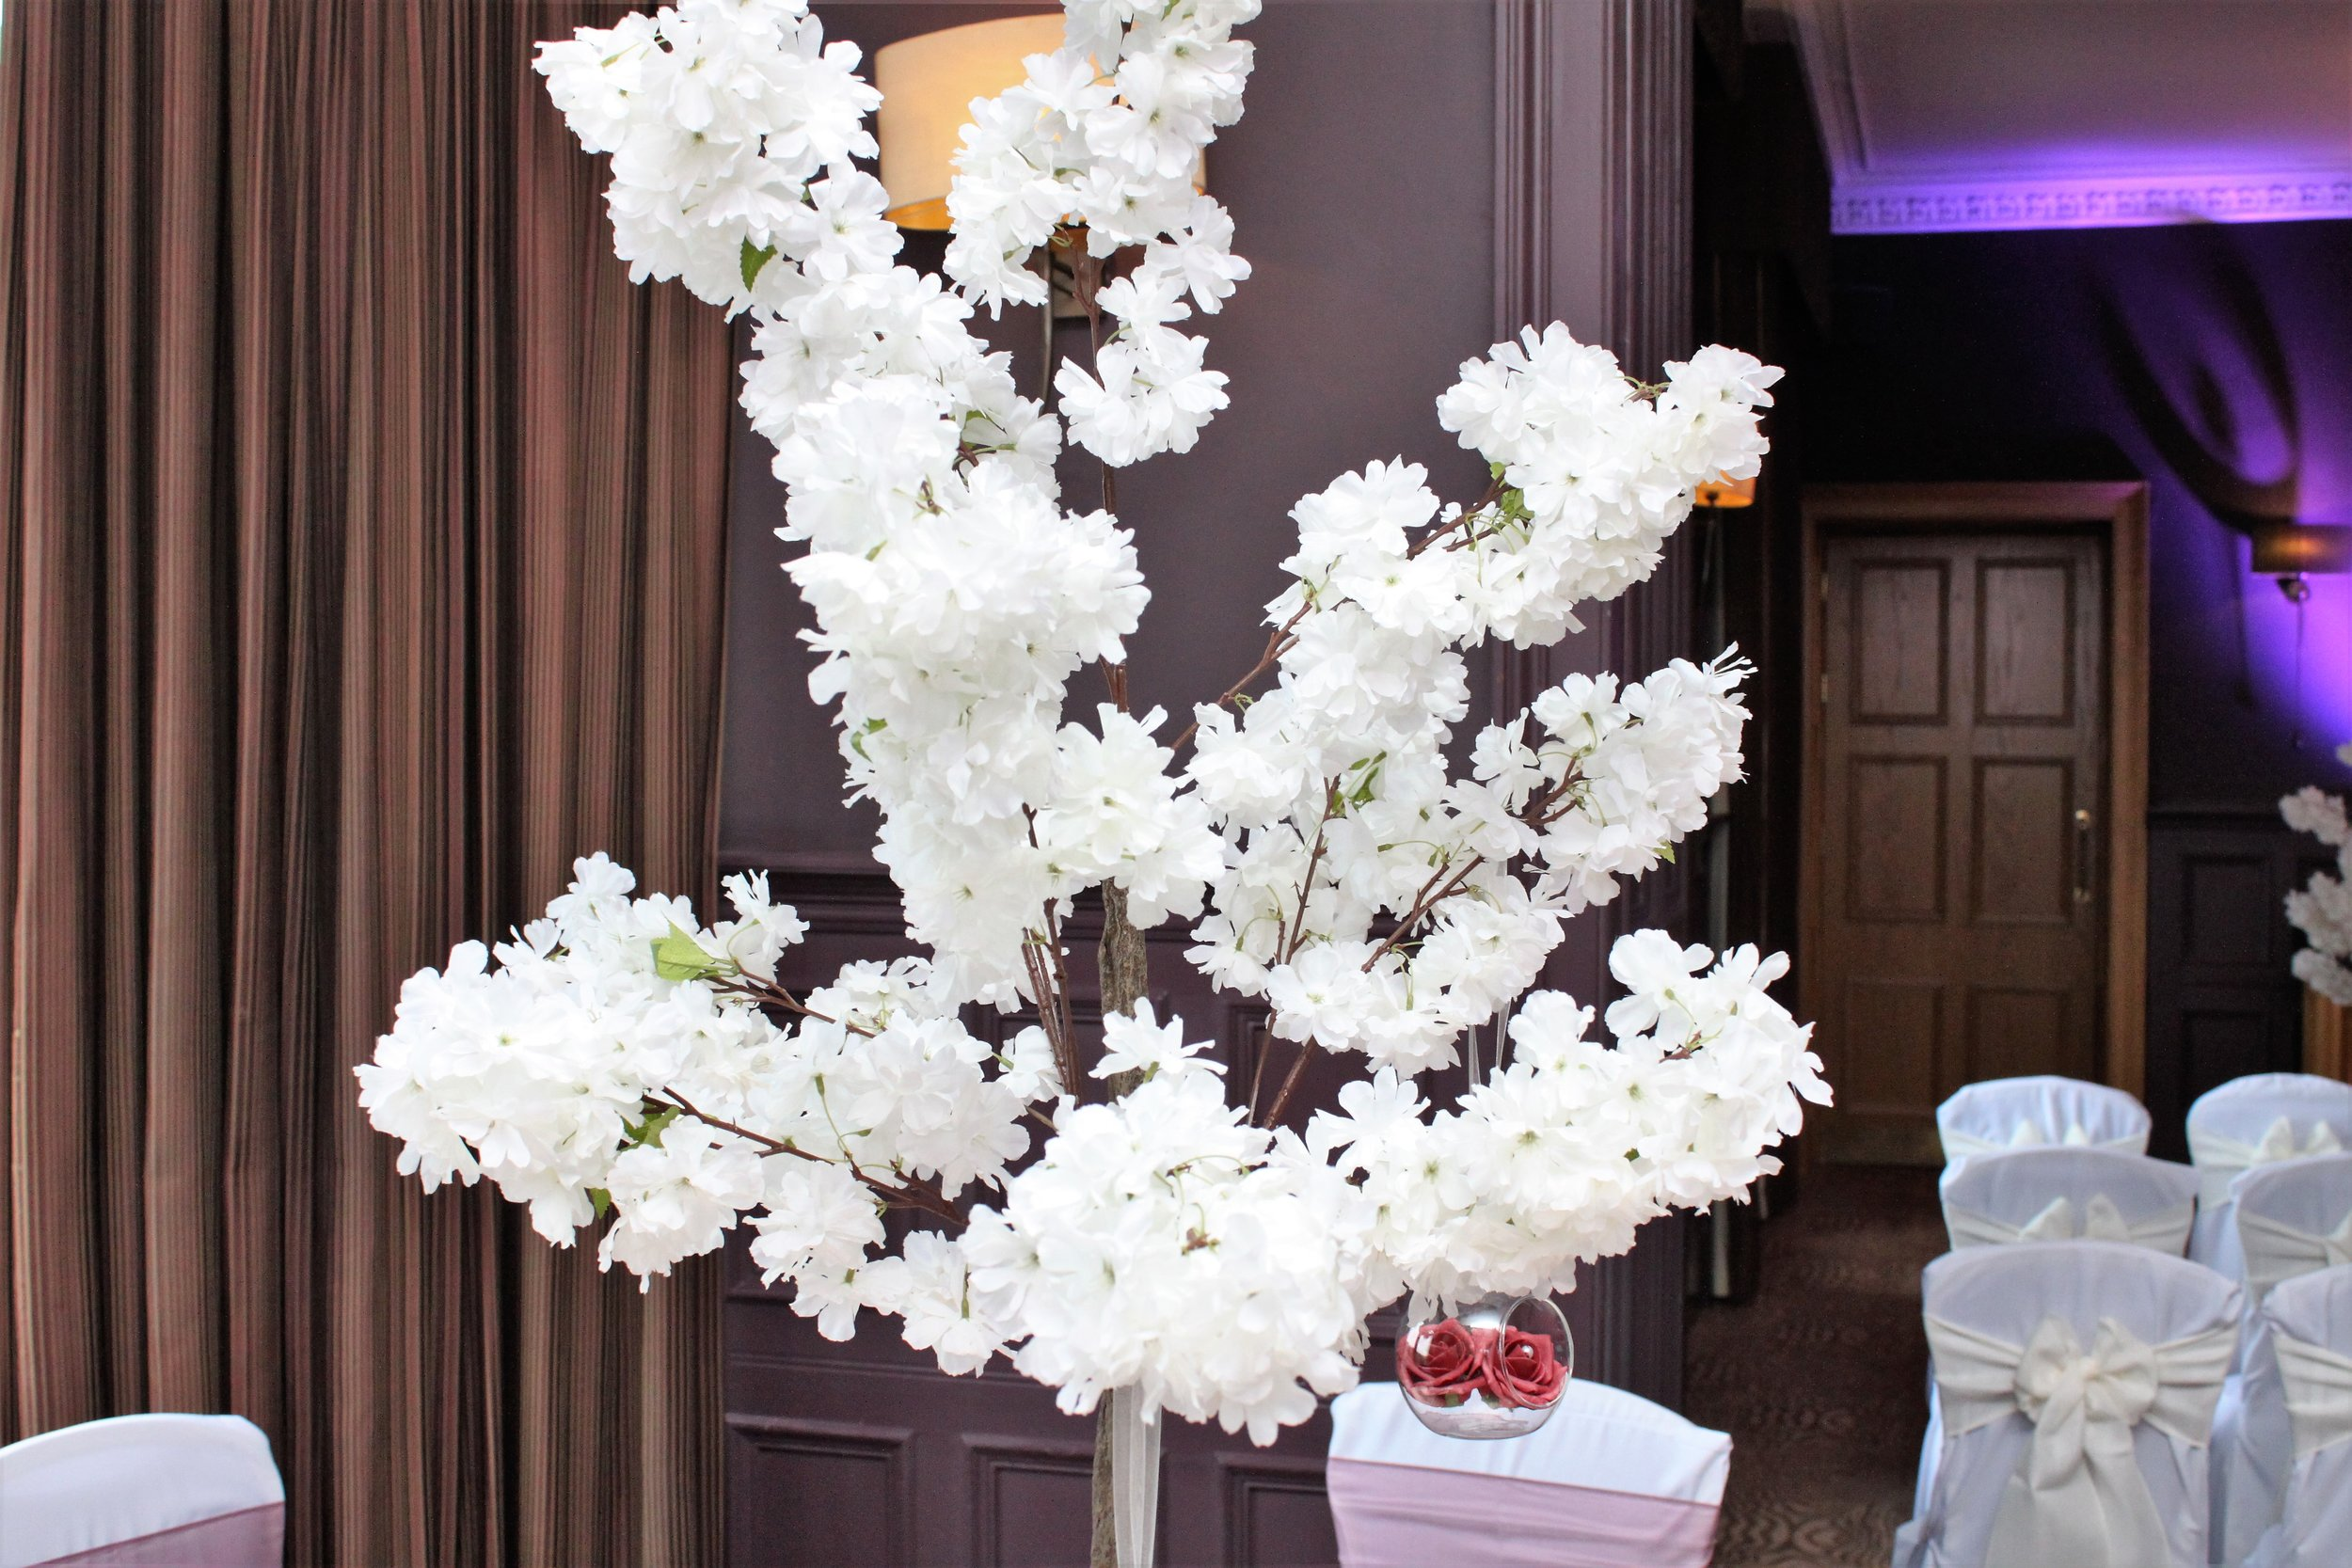 Cherry Blossom - A collection of stunning white cherry blossom trees that stand an impressive 4ft tall. Our trees create the perfect table centrepiece and transform any venue. 6ft blossom trees are also available as a matching set!From only £35 each or hire 10 for £300!